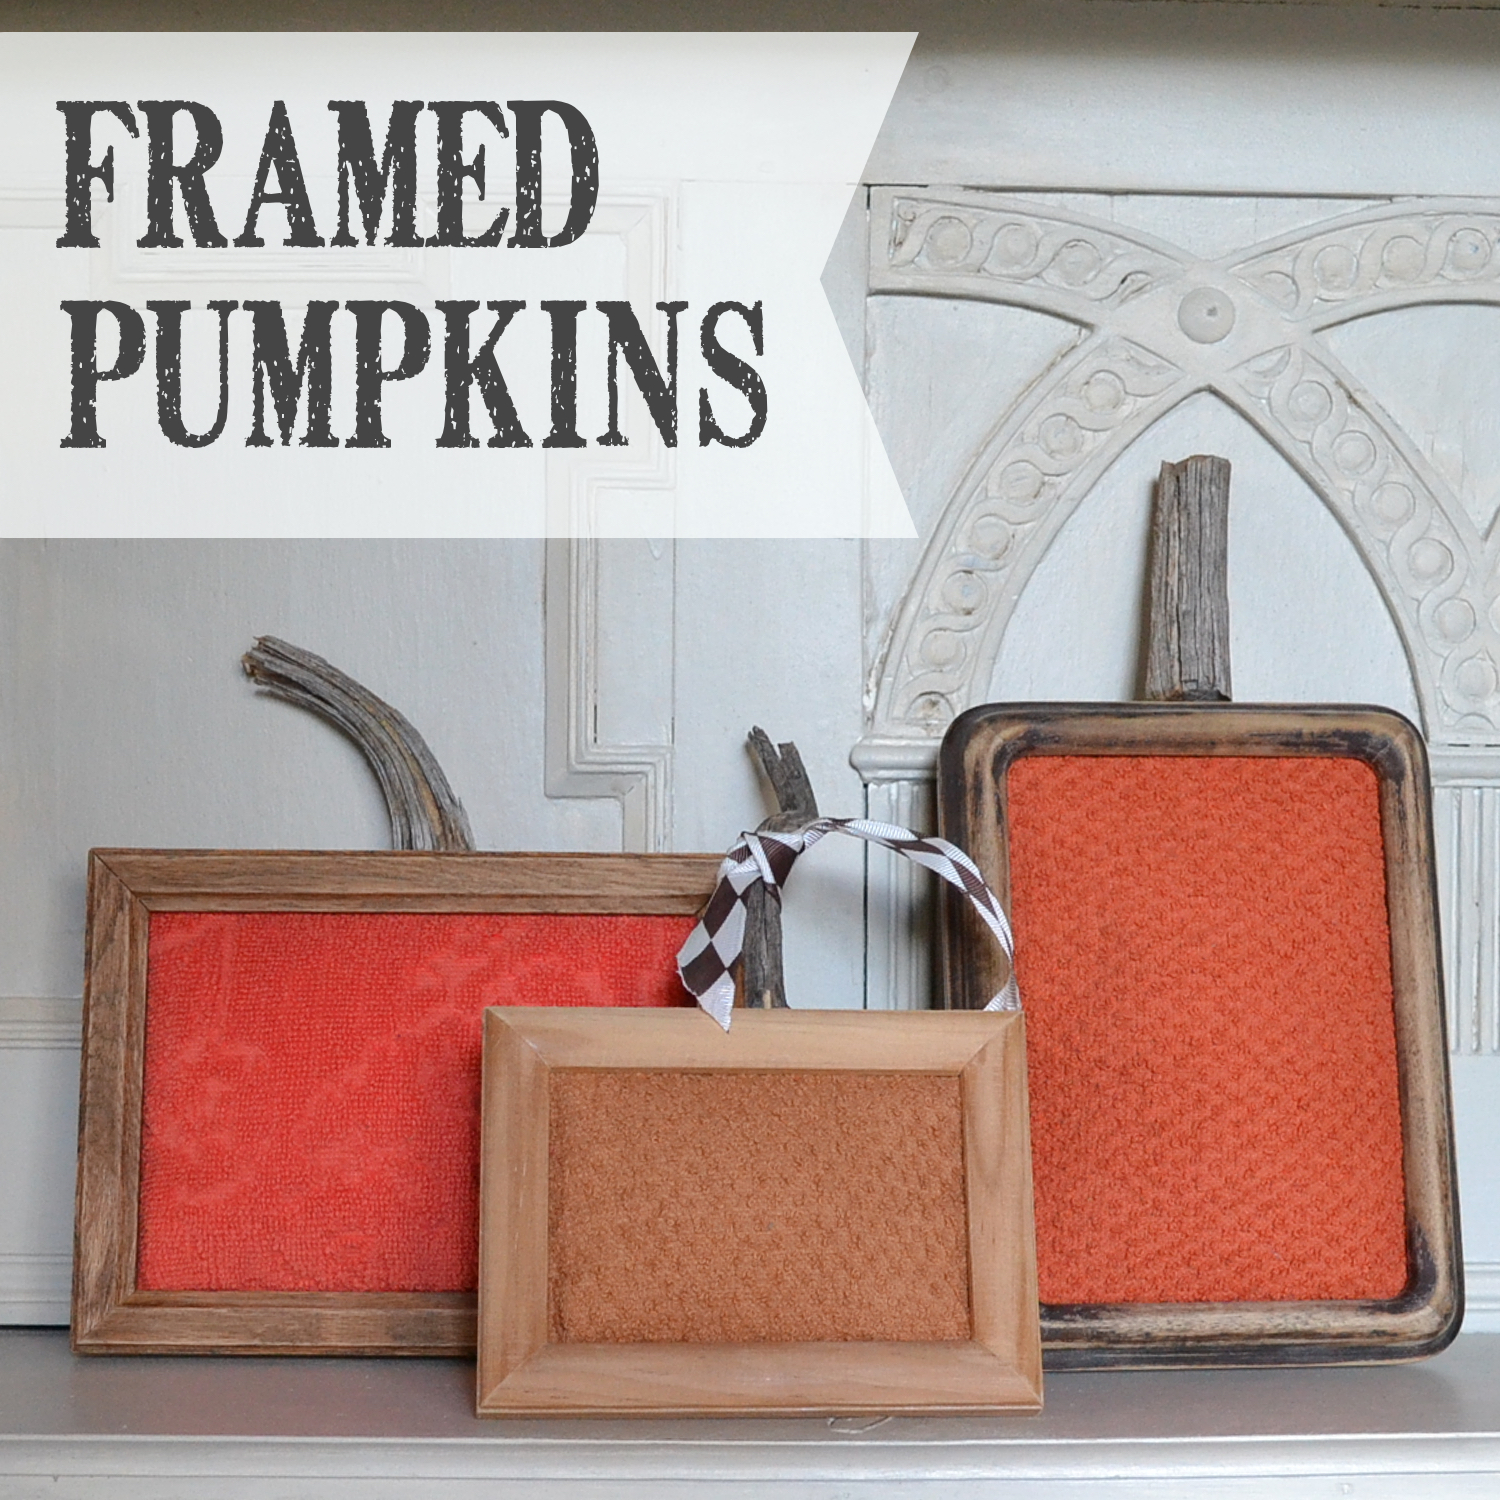 Framed pumpkins a DIY project adding autumn colors in frames with batting for the bulge. Sticks for stems | countrydesignstyle.com